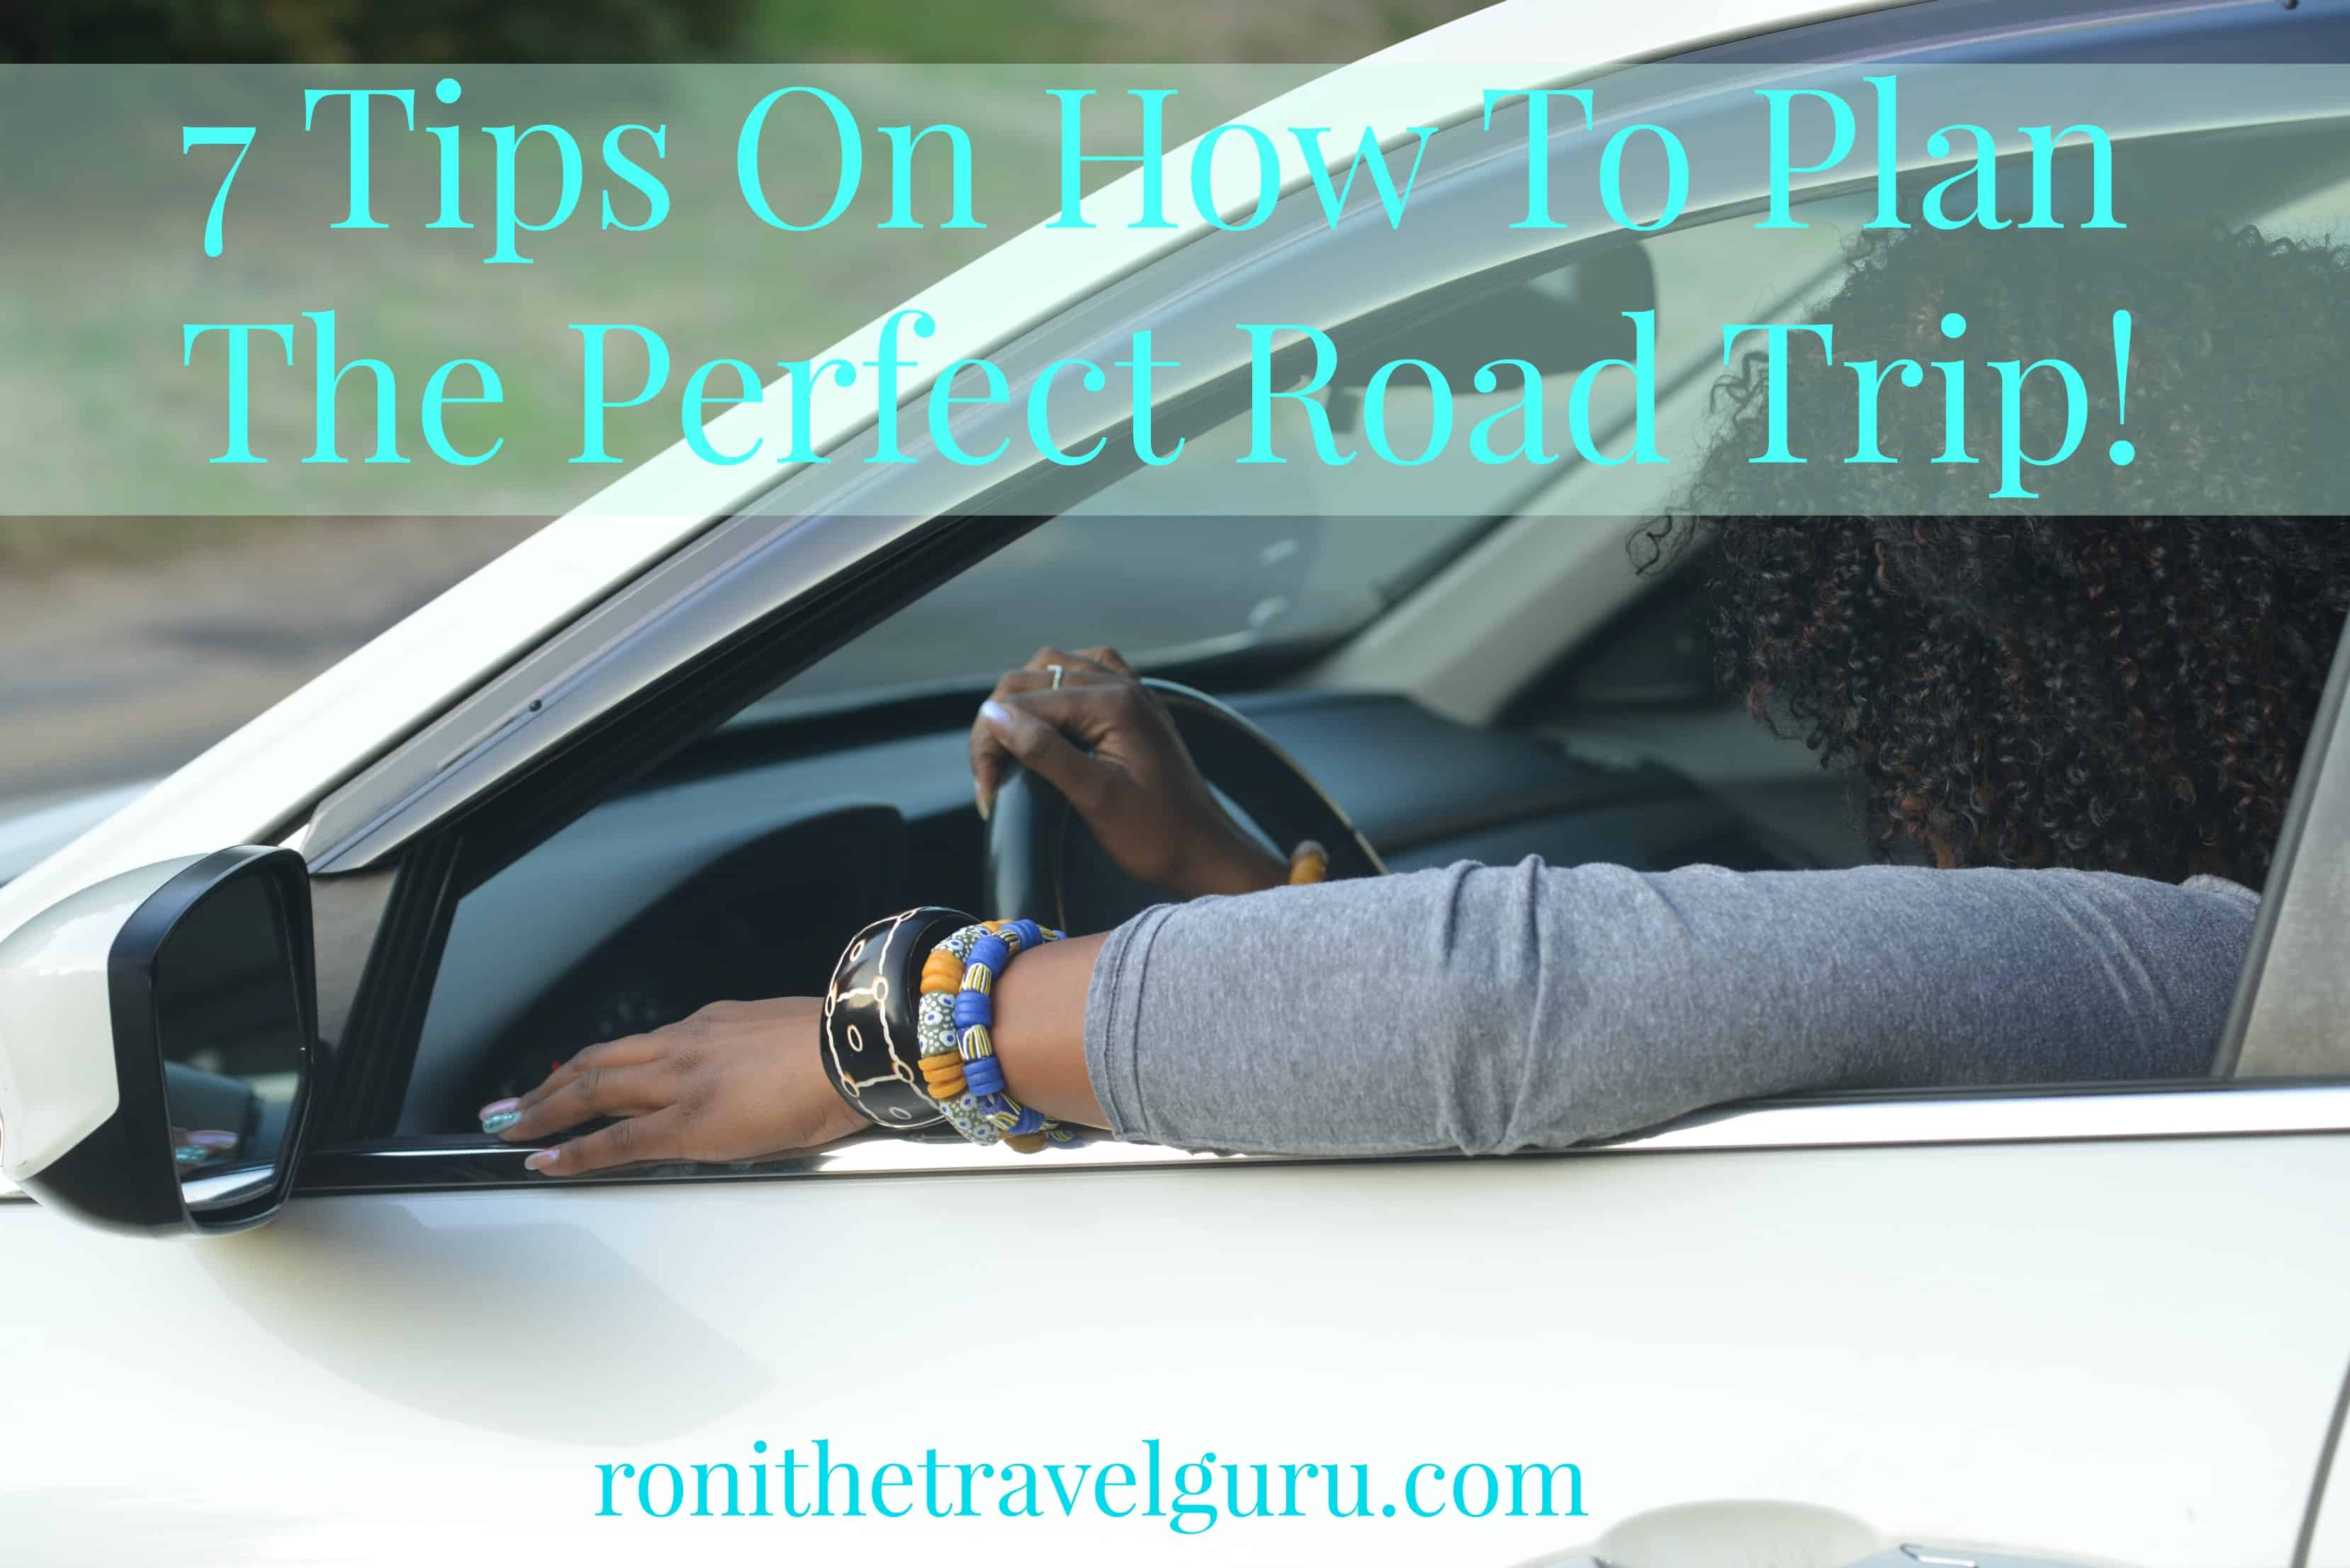 7 tips on how to plan the perfect road trip